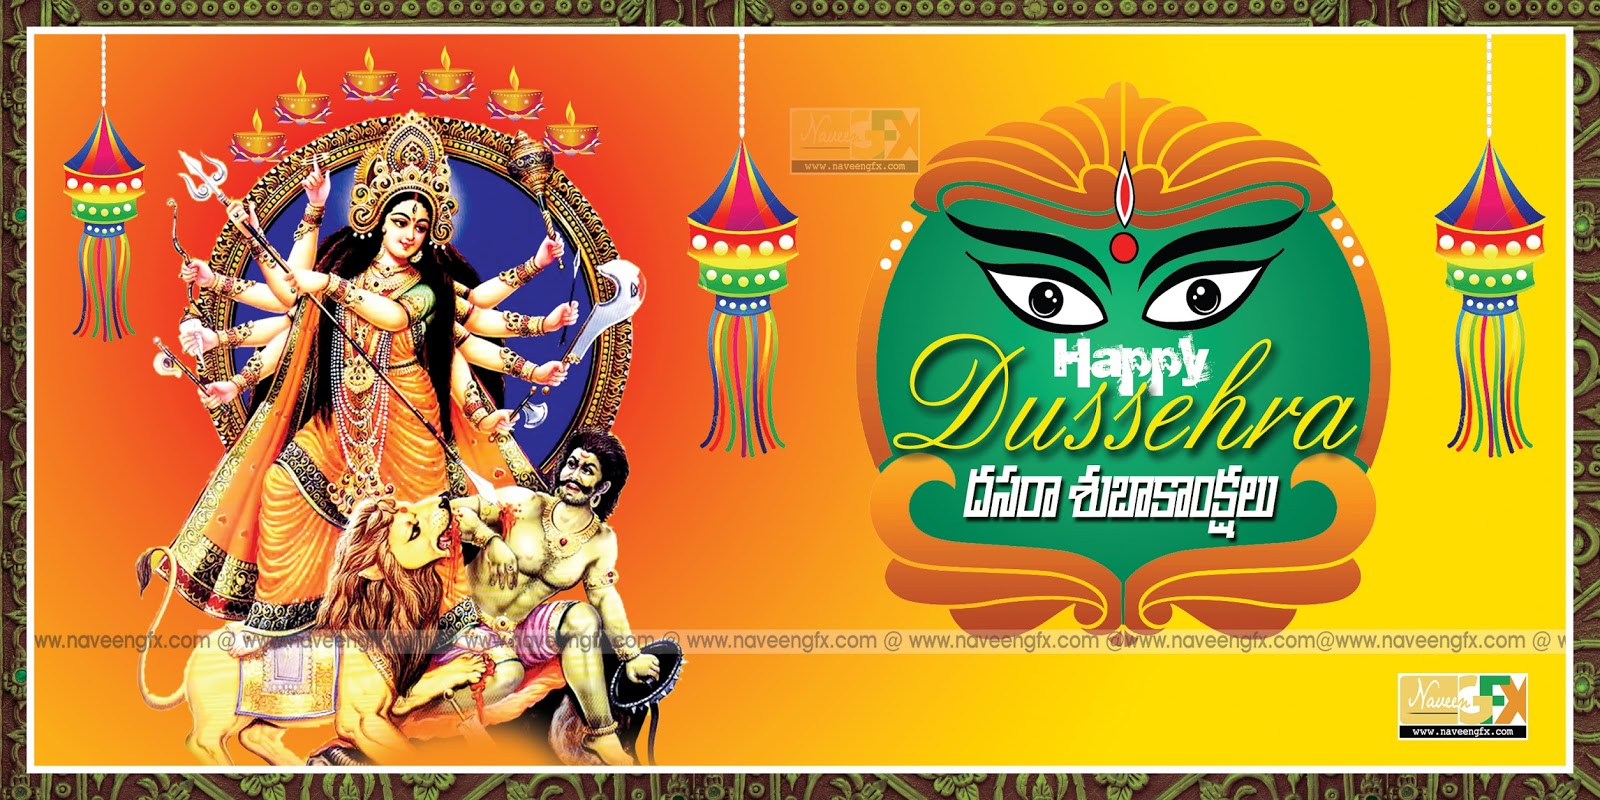 Happy dussehra 2017 images wishes sms quotes cards messages dasami67 kristyandbryce Choice Image